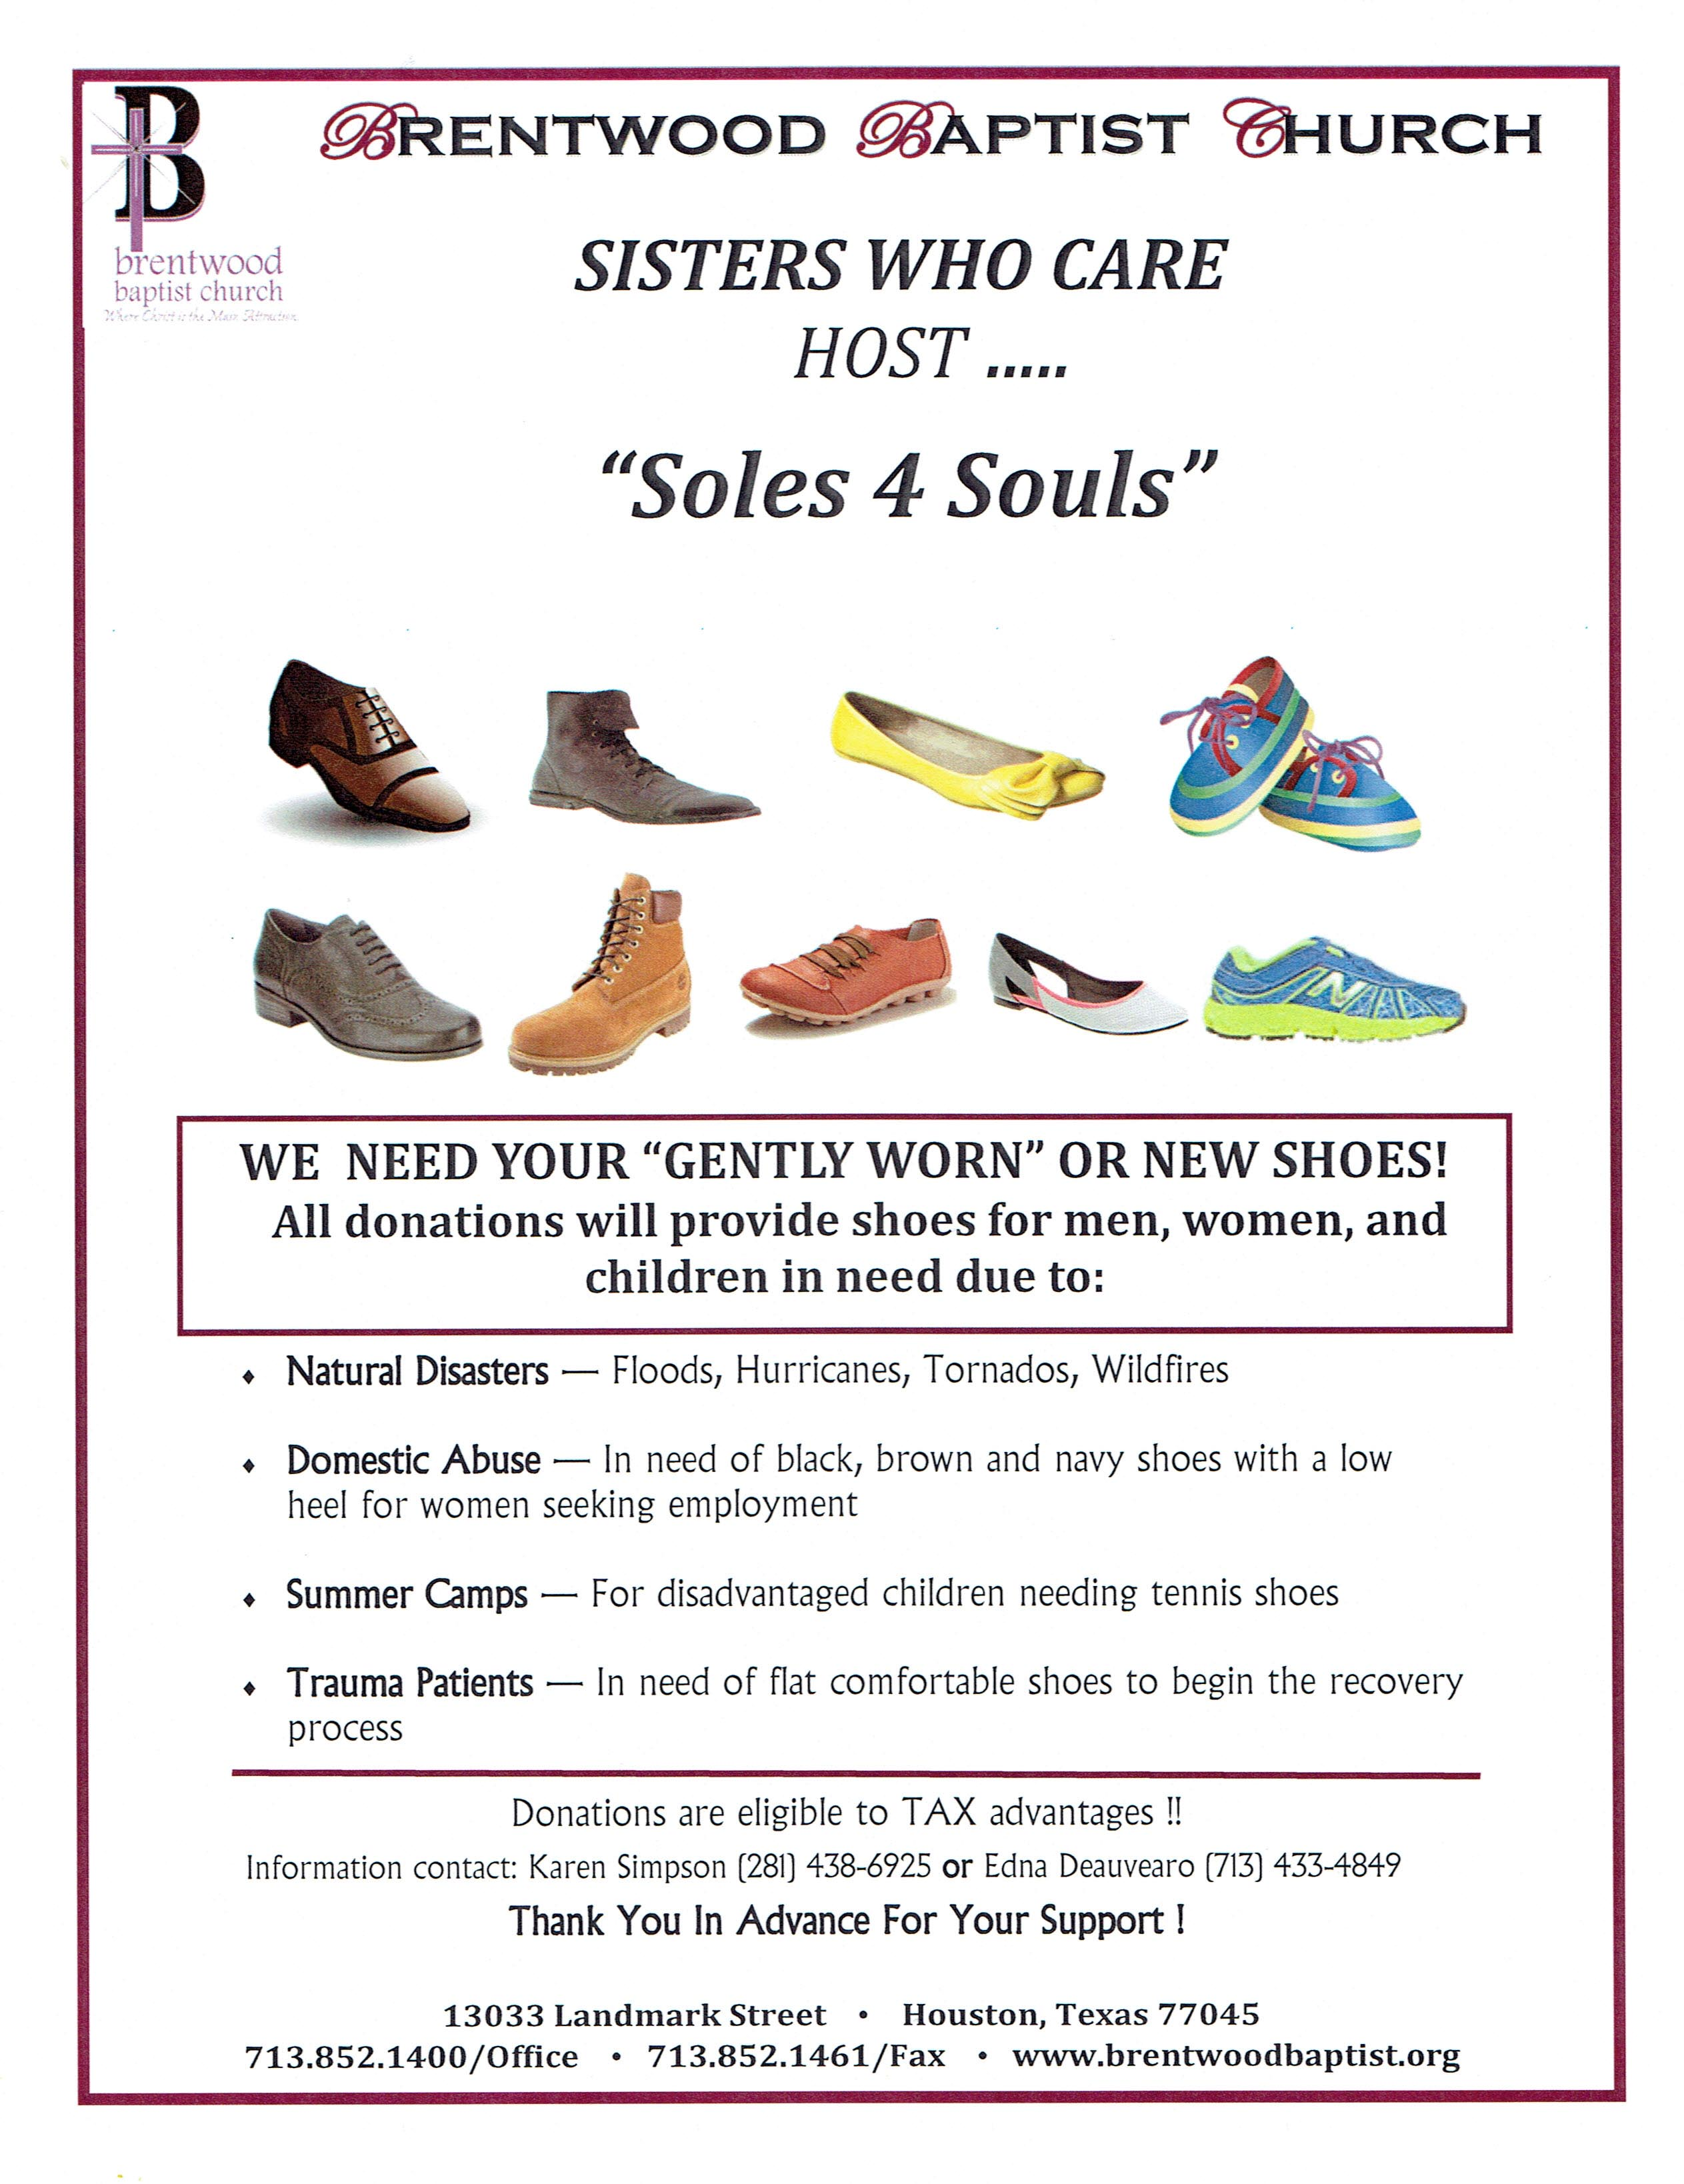 Brentwood Baptist Church – Soles 4 Souls